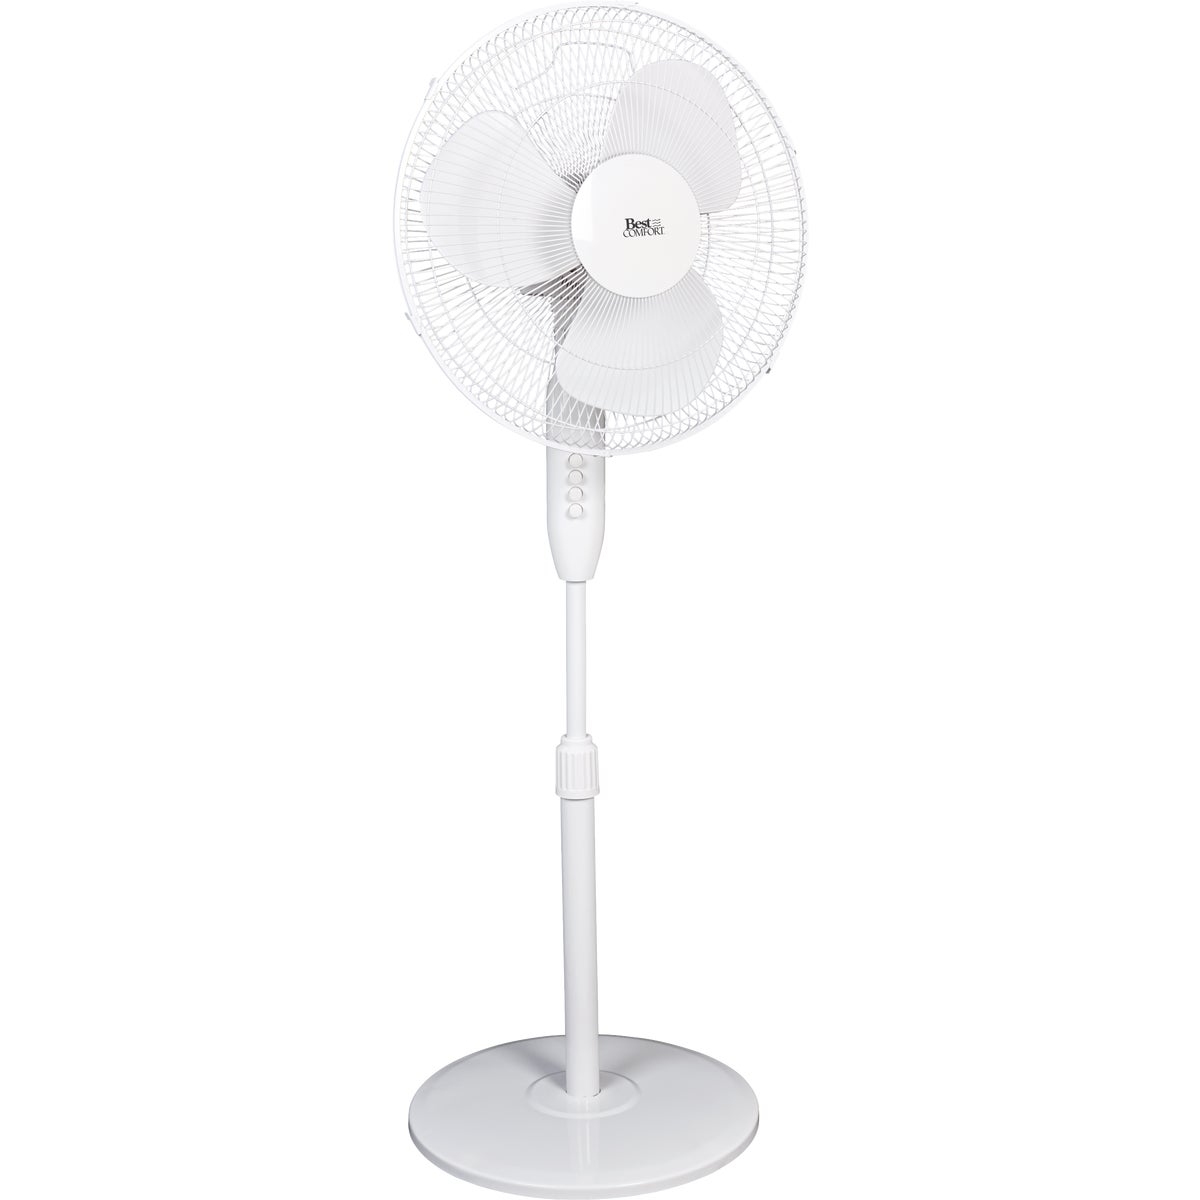 "16"" PEDESTAL FAN - FS40-8JB by Do it Best"